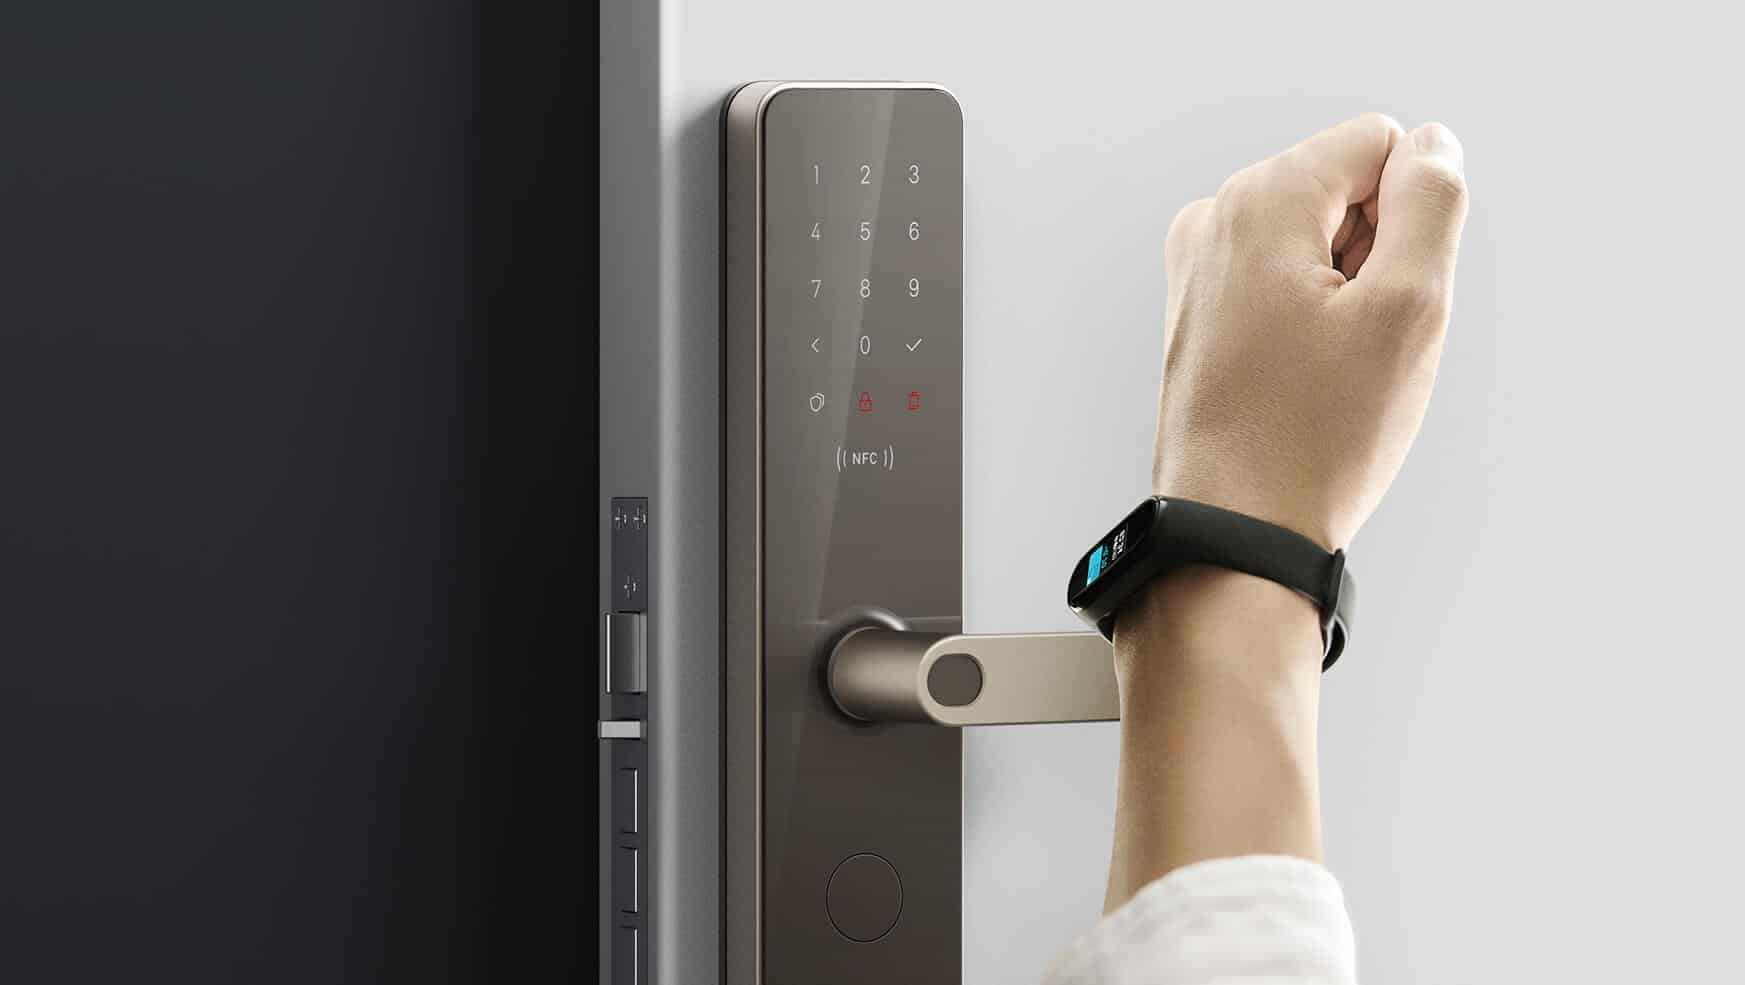 smart door locks with NFC and a fingerprint sensor that can replace a traditional padlock